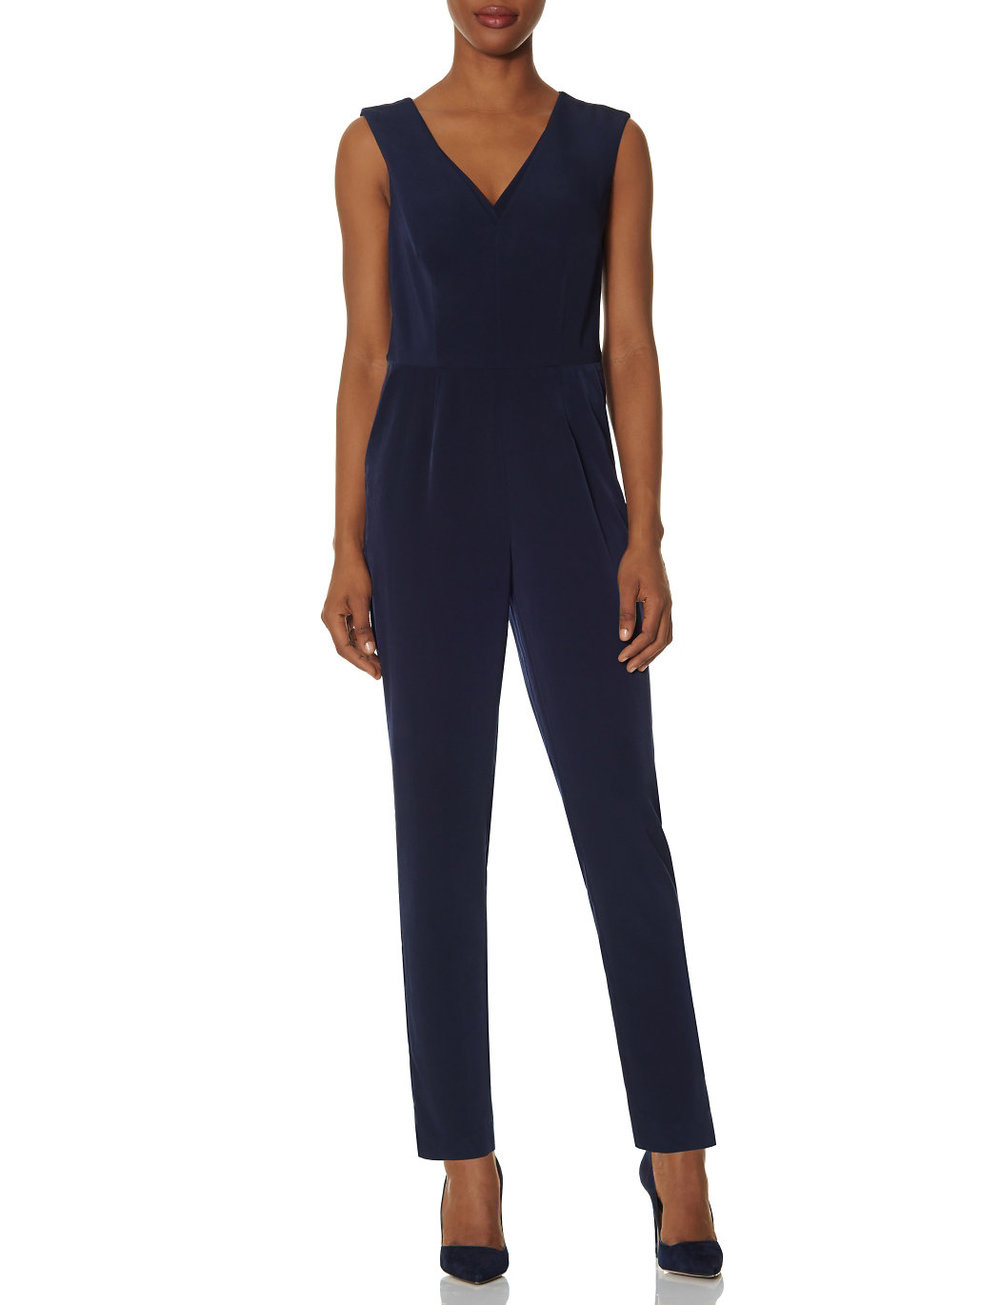 V Neck Jumpsuit. (navy blue!) The Limited. Was: $118 Now: $82. I'm wearing this right now!